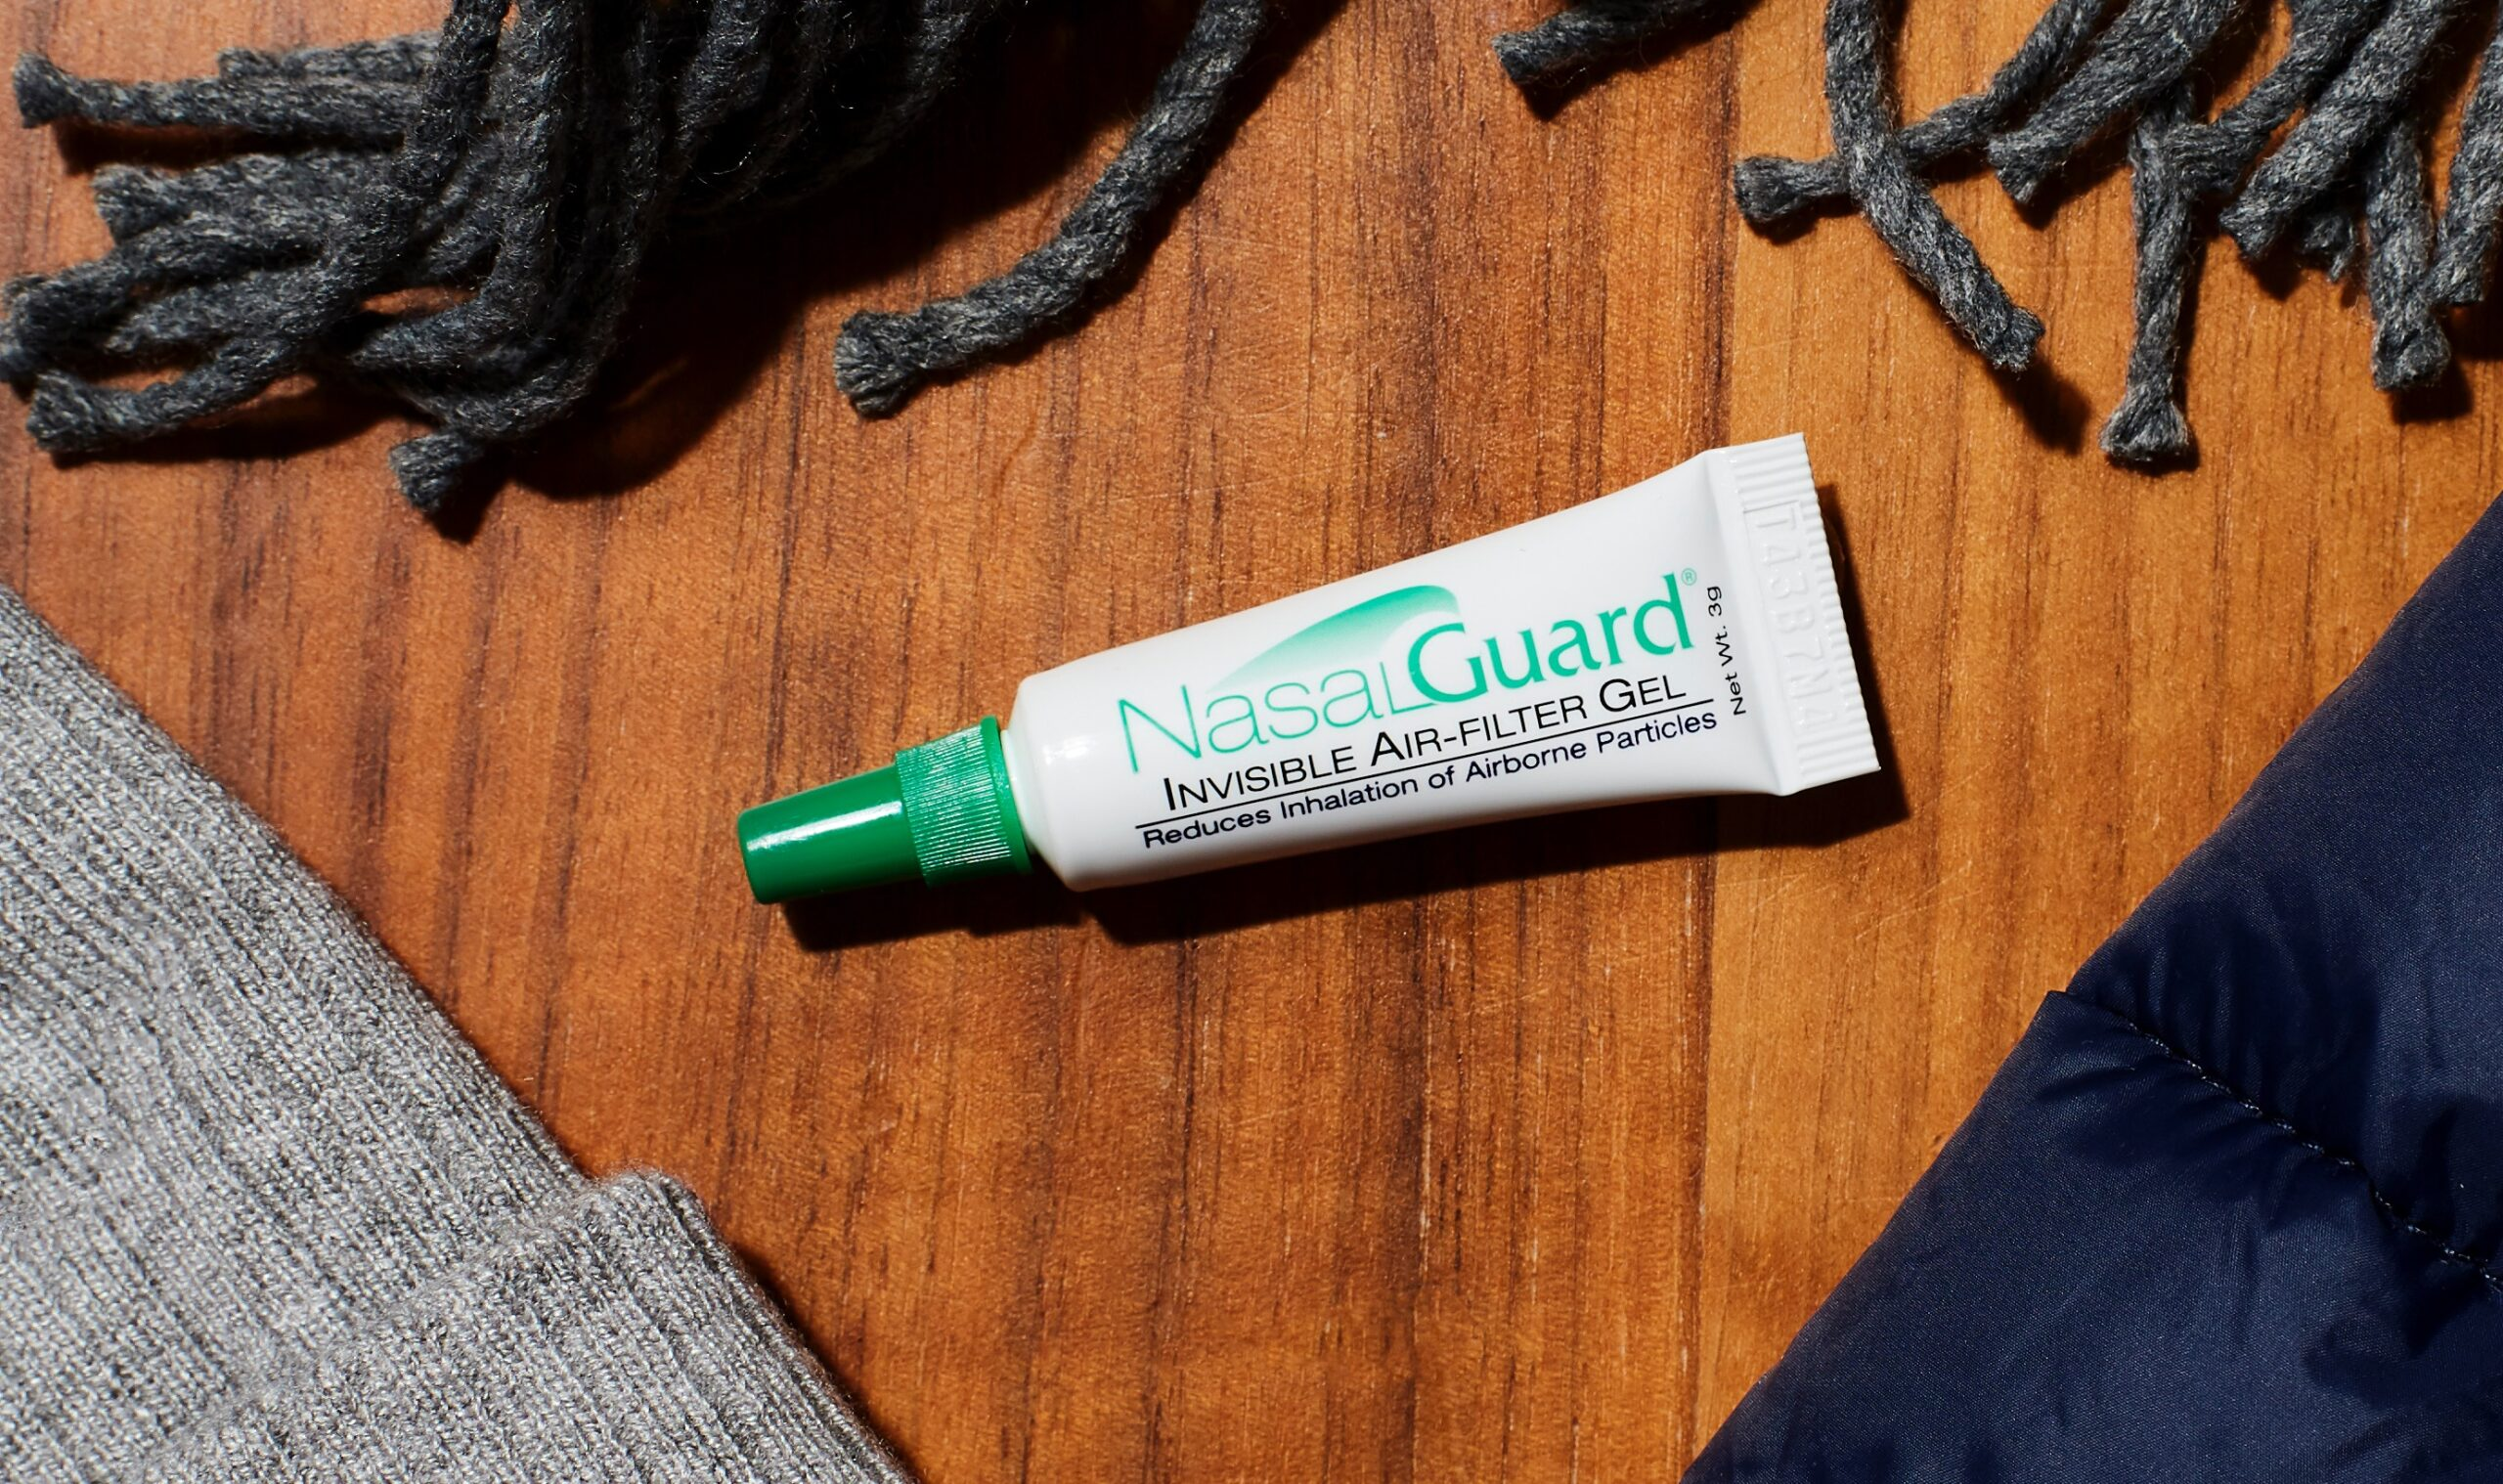 Nasal Guard: The Answer to Our COVID-19 Prayers